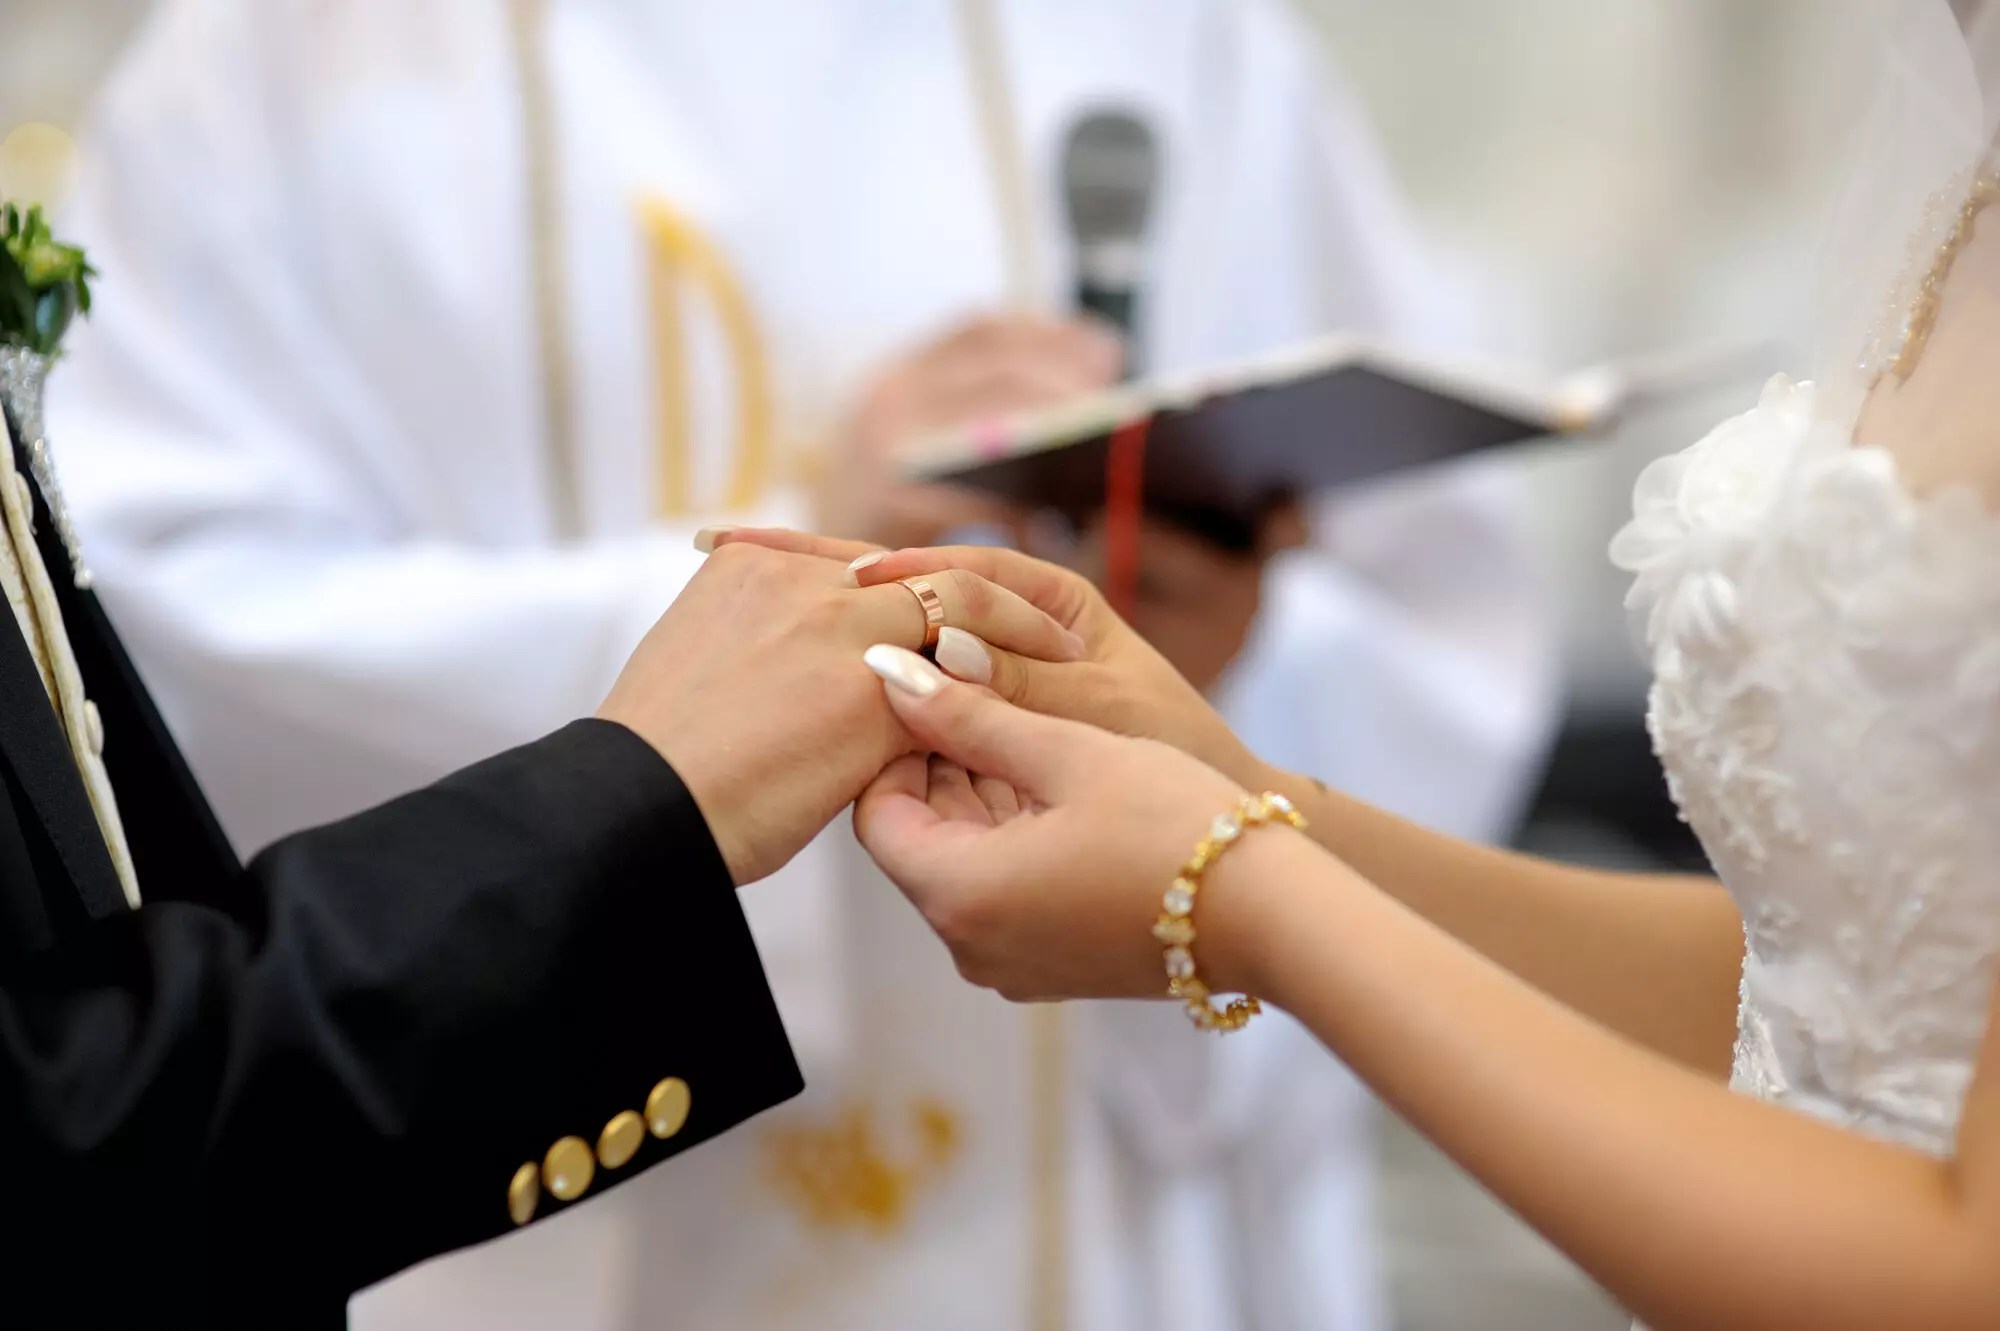 6 Ways To Keep Your Christian Marriage Going Strong